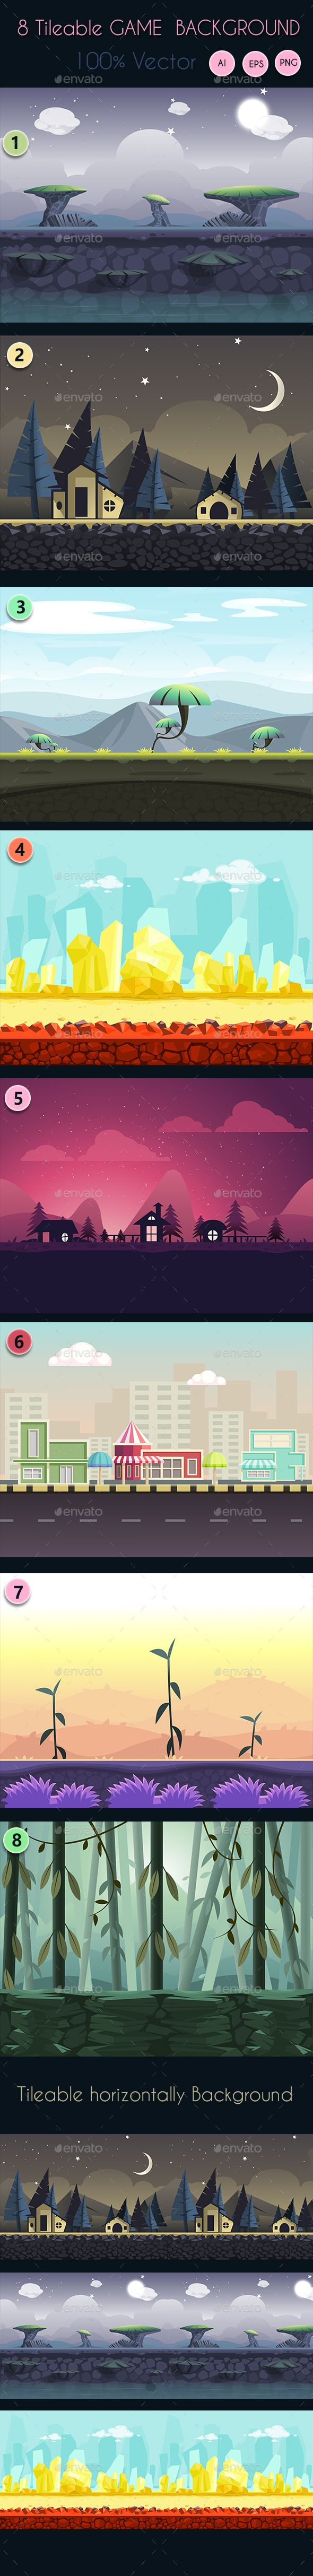 tileable vector game background for game maker based you can use this background for your game applicationproject it suits for game developers